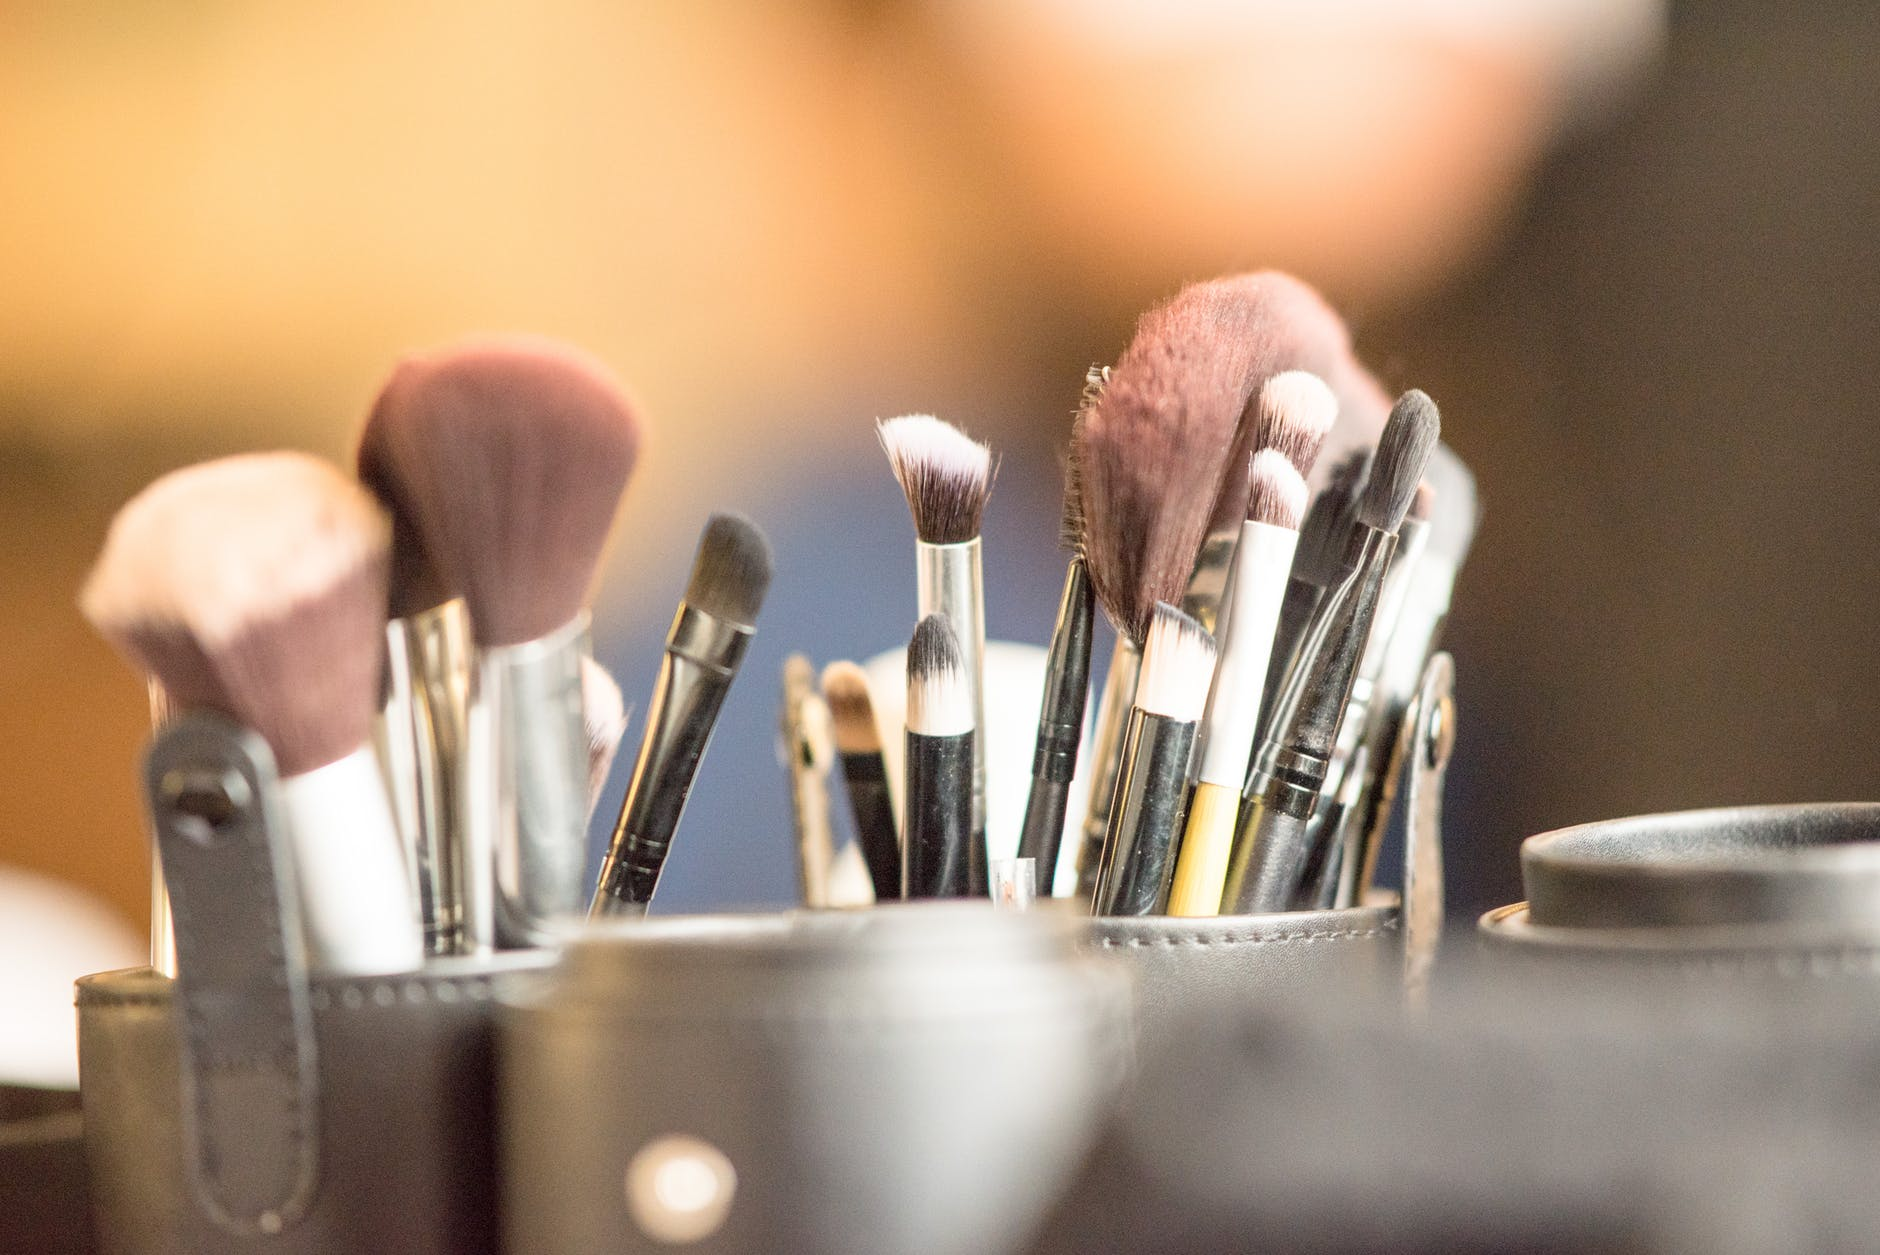 close up photography of makeup brushes